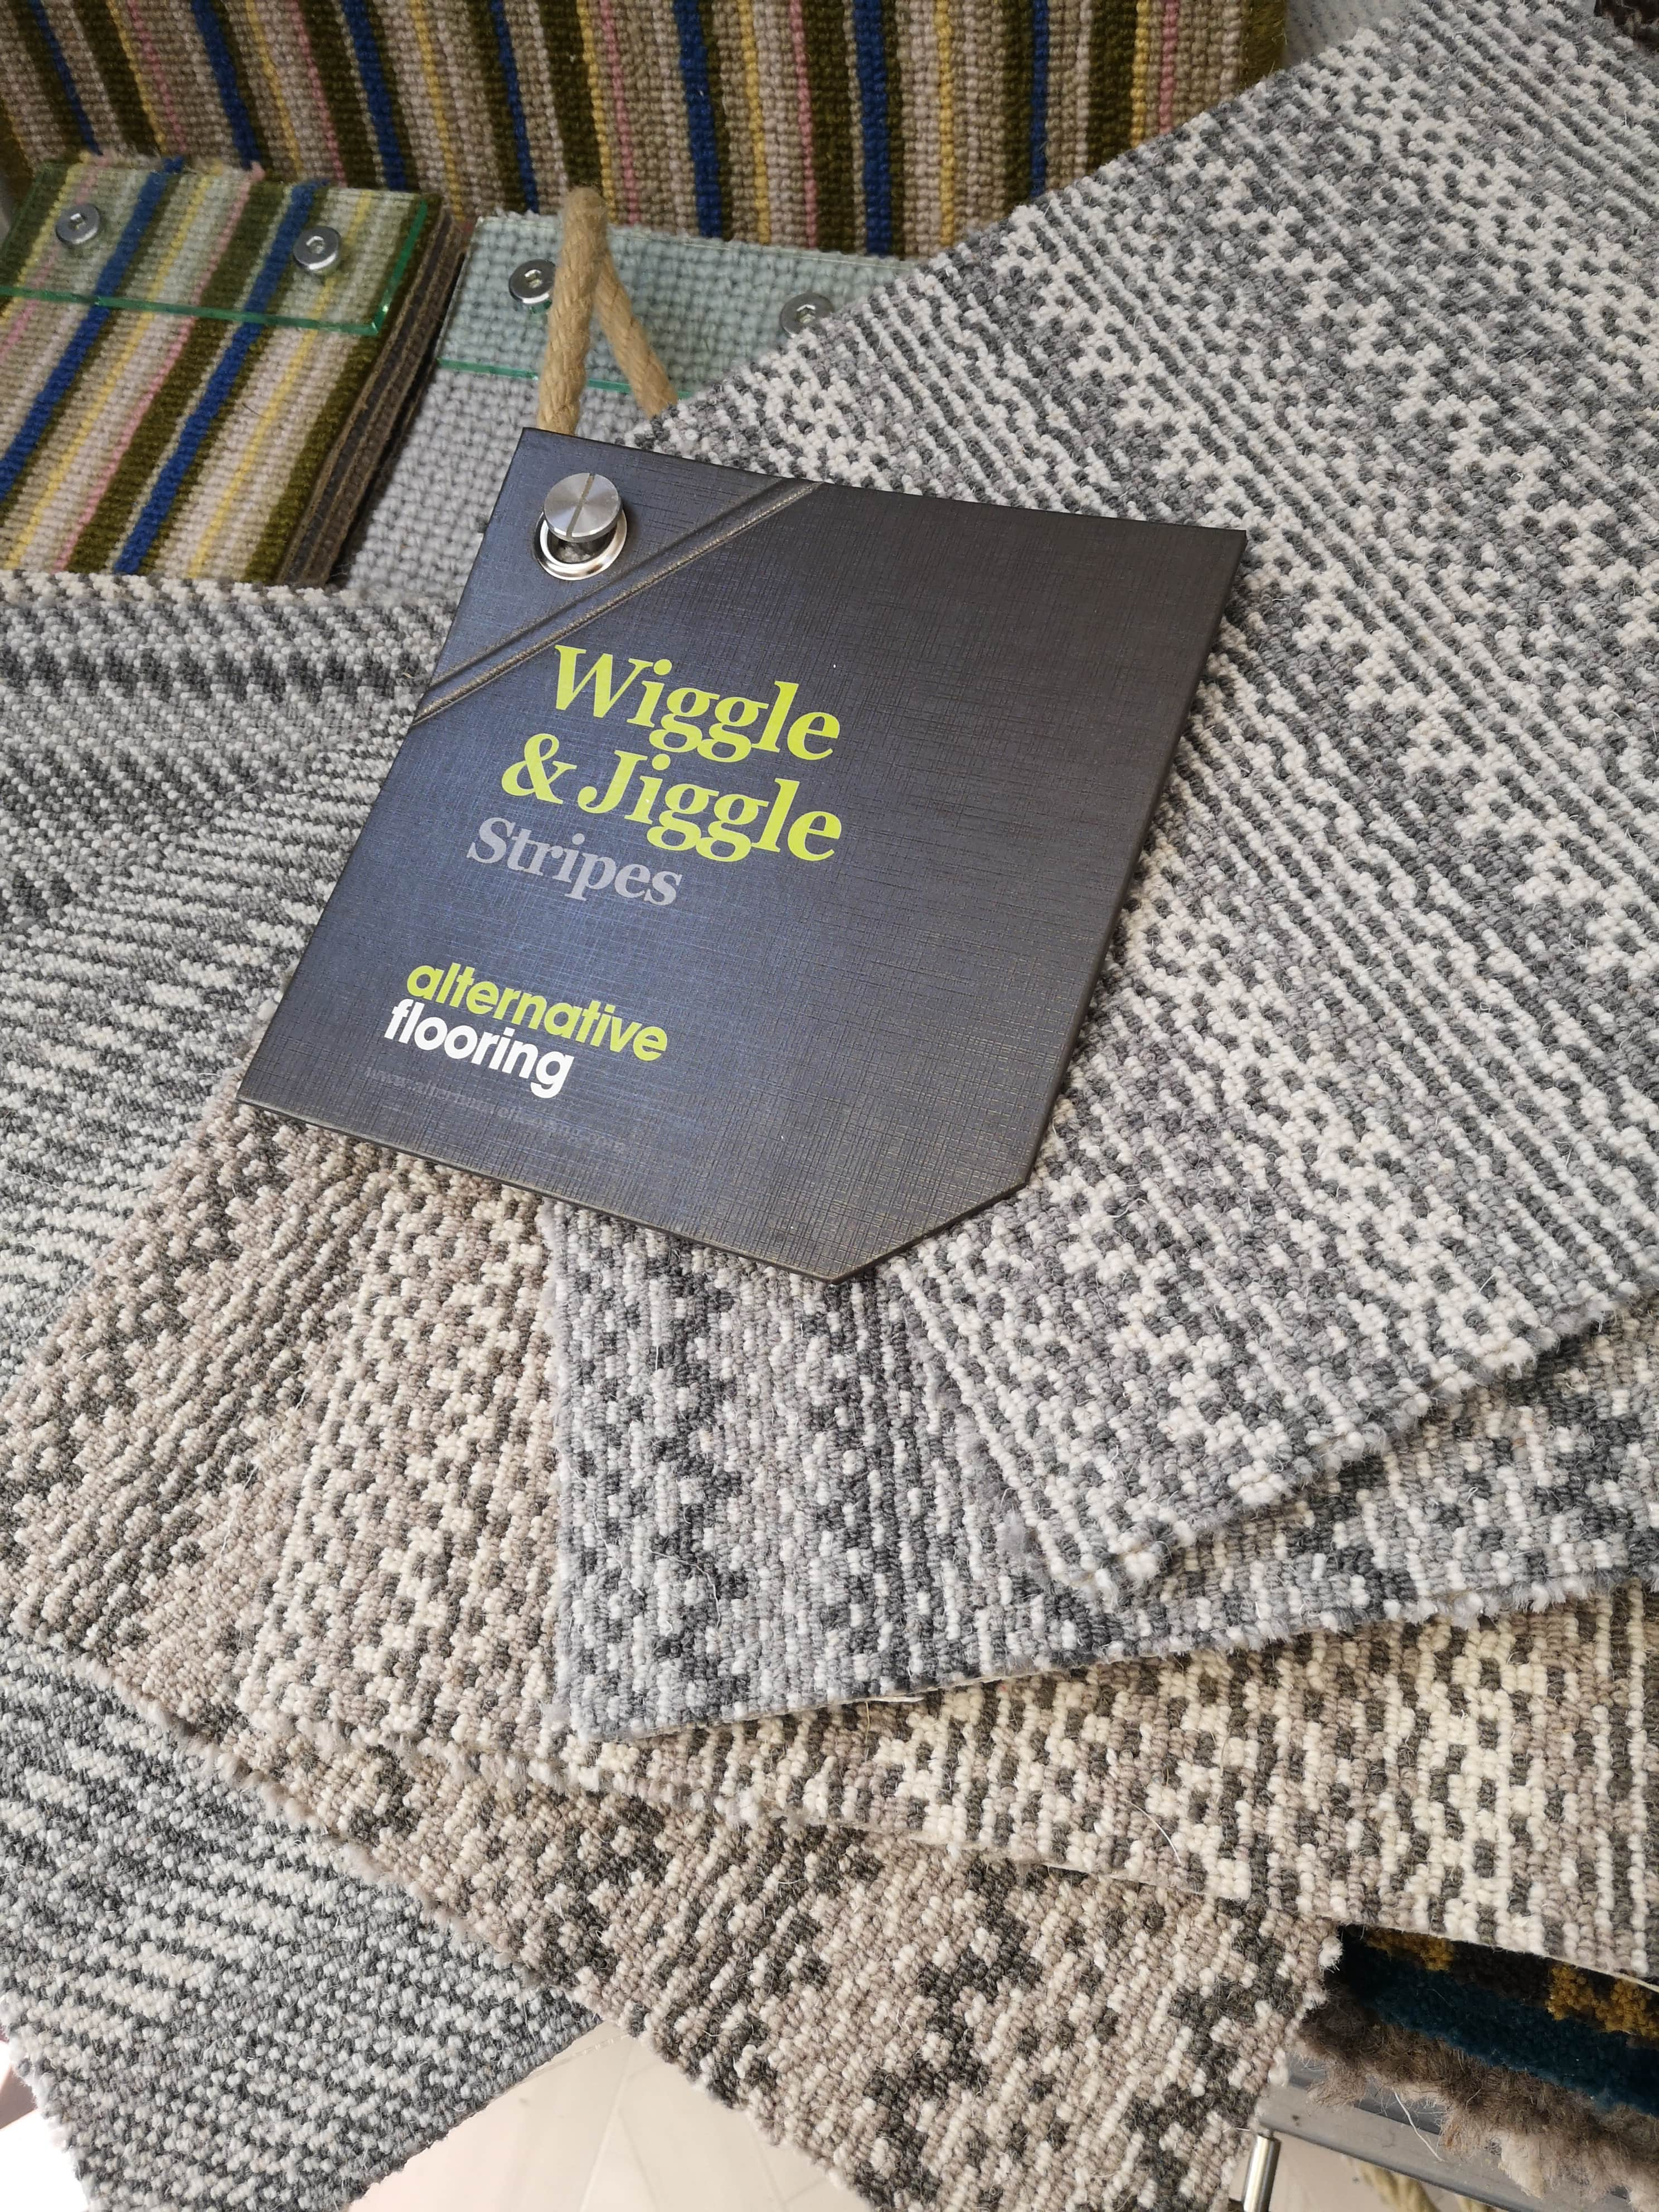 Wiggle & Jiggle handwoven carpet from Alternative Flooring available from Flooring 4 You Bowdon showroom